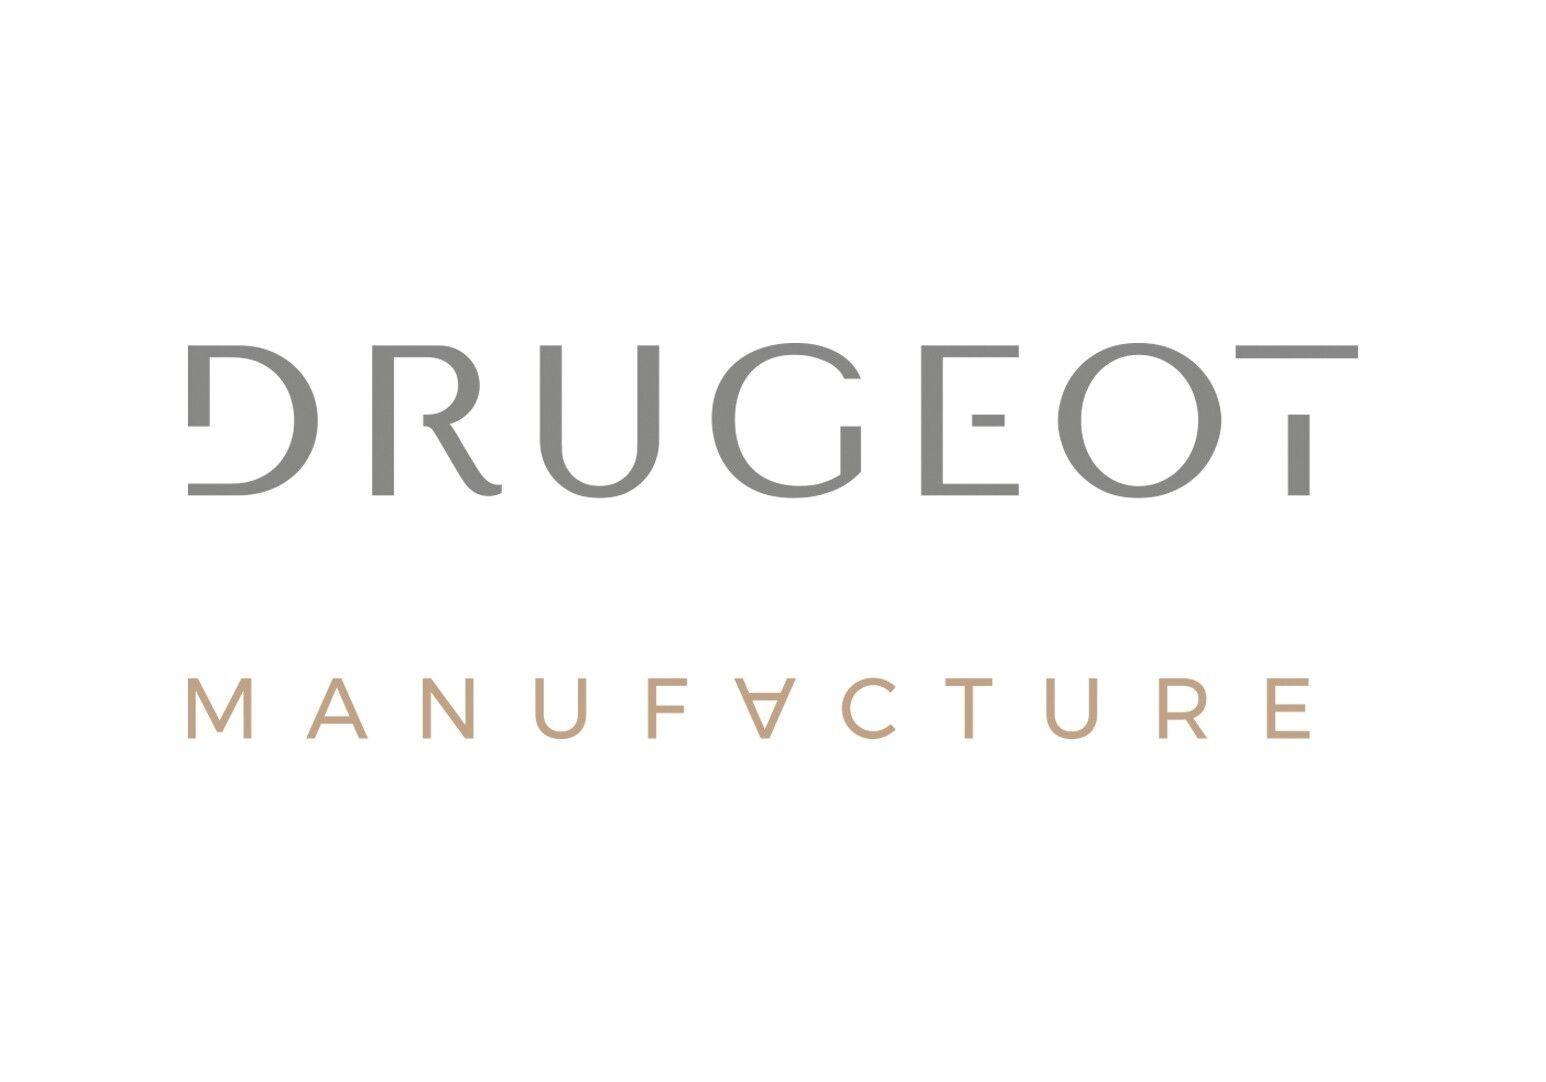 DRUGEOT MANUFACTURE